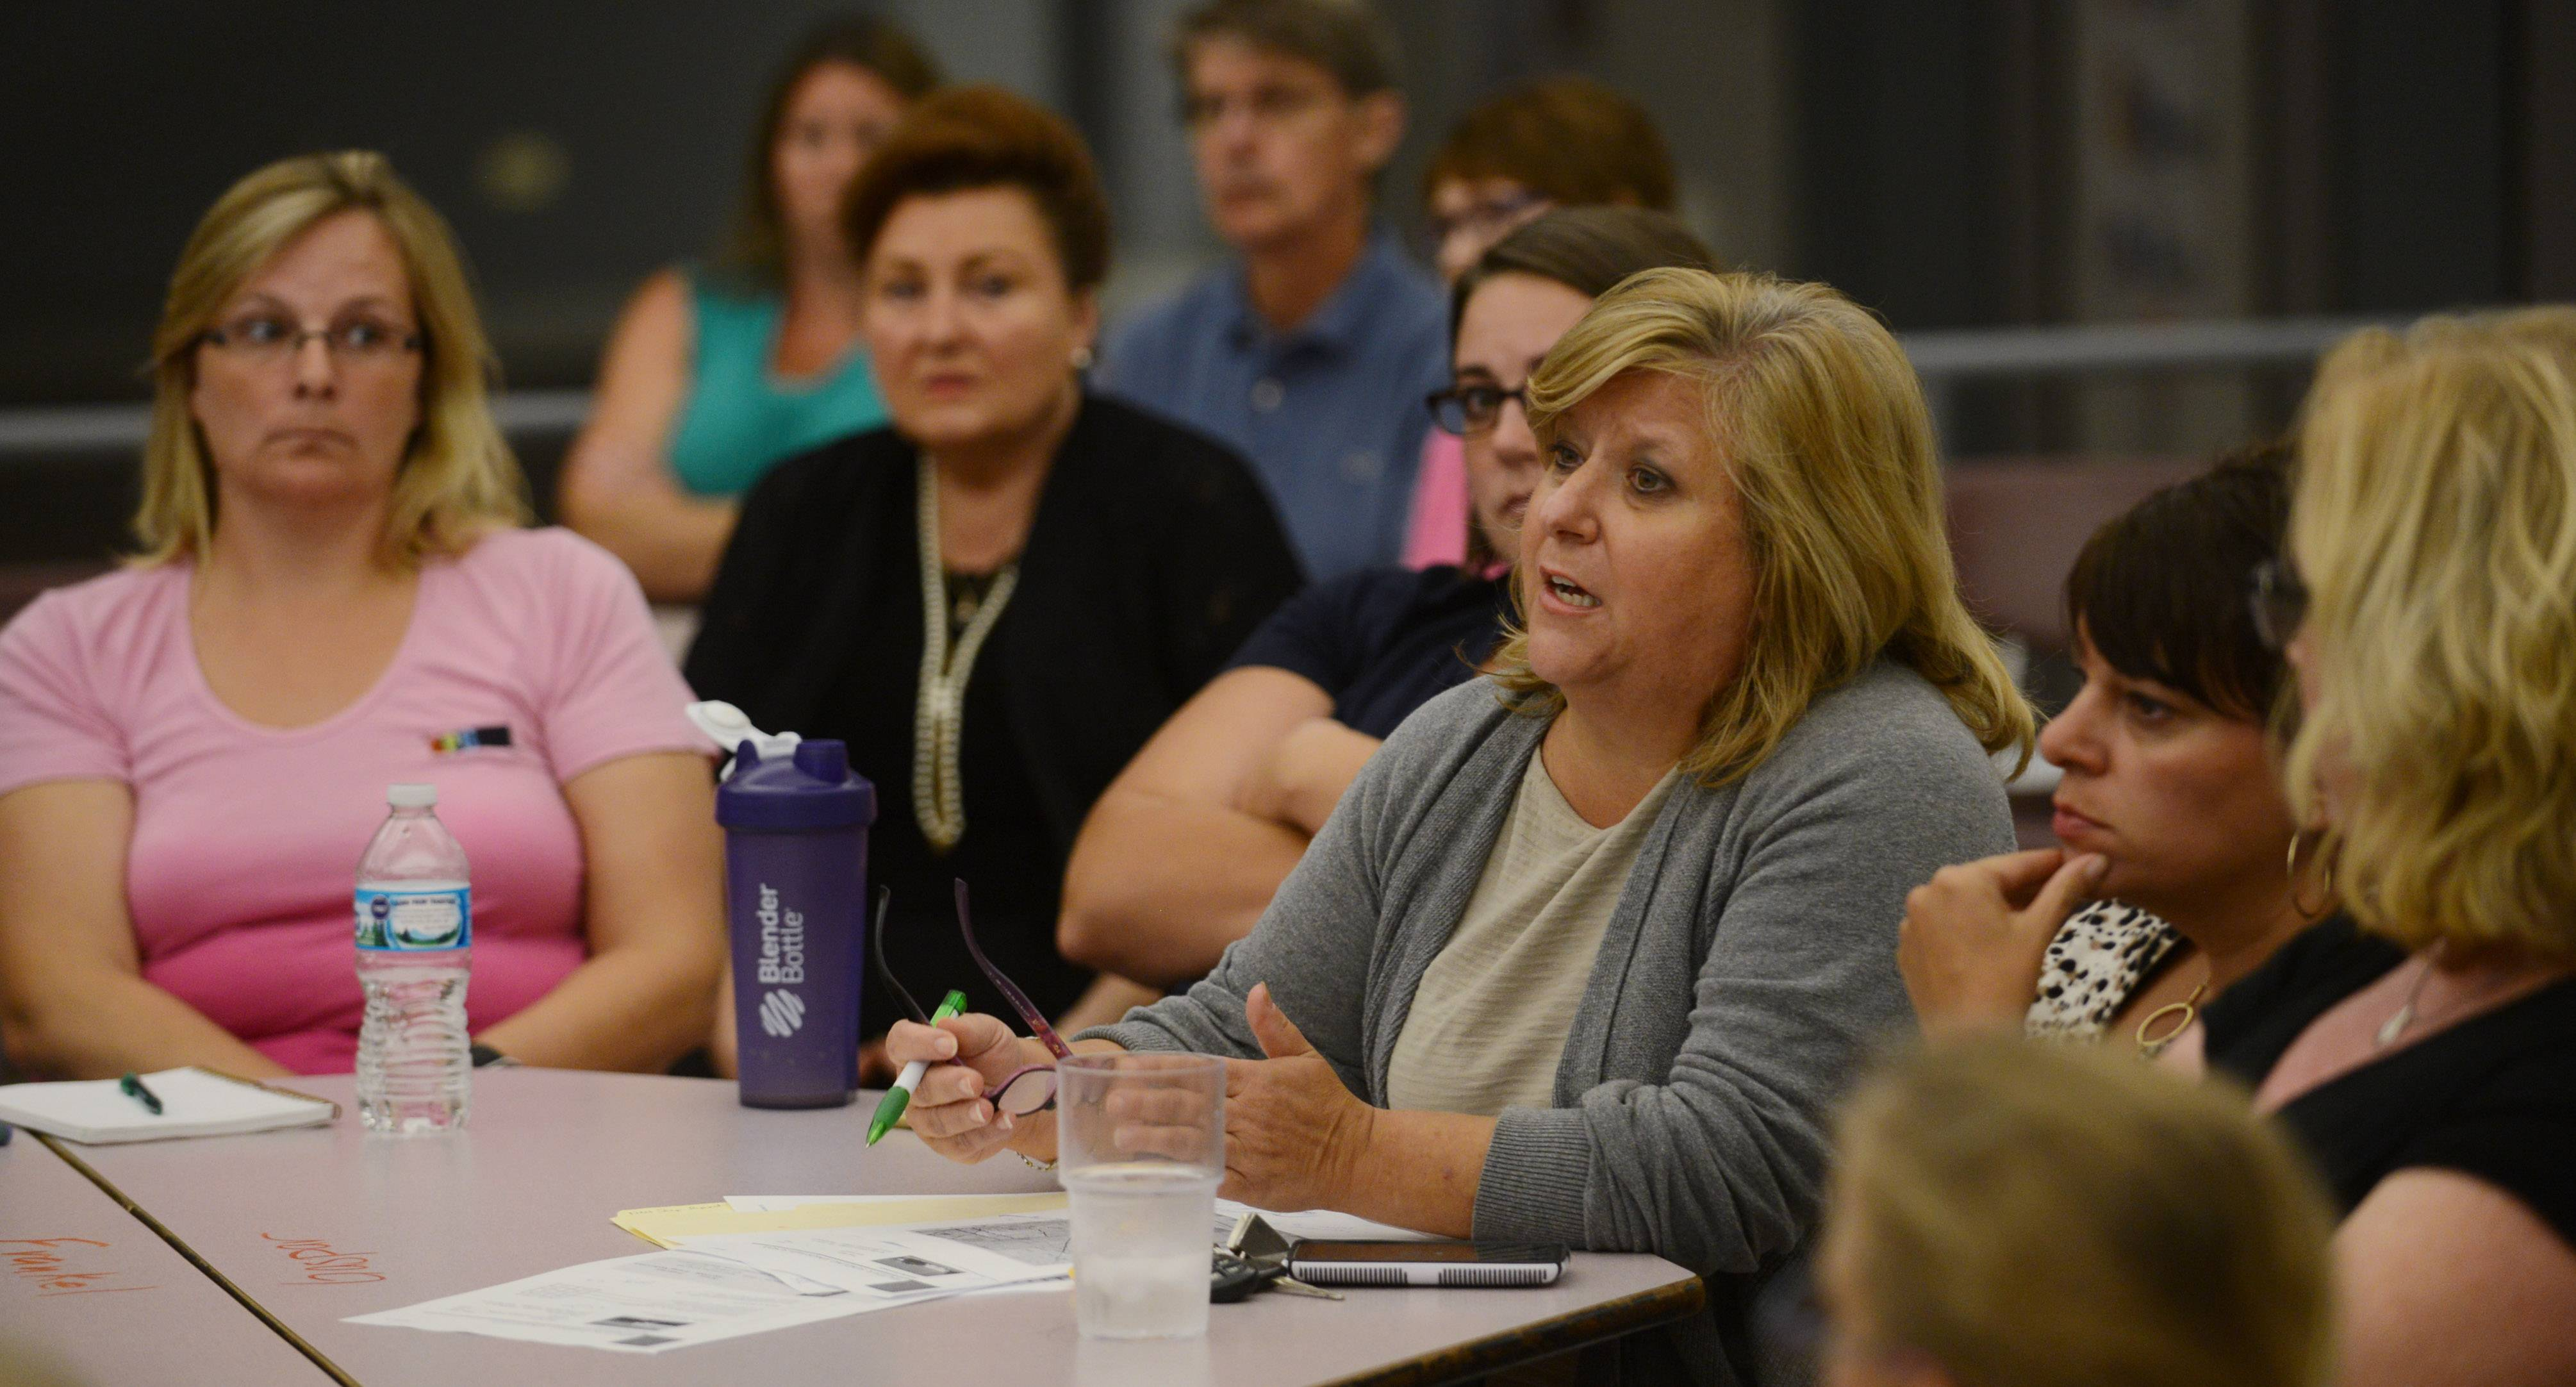 District 15 parents raise concerns over proposed boundary changes